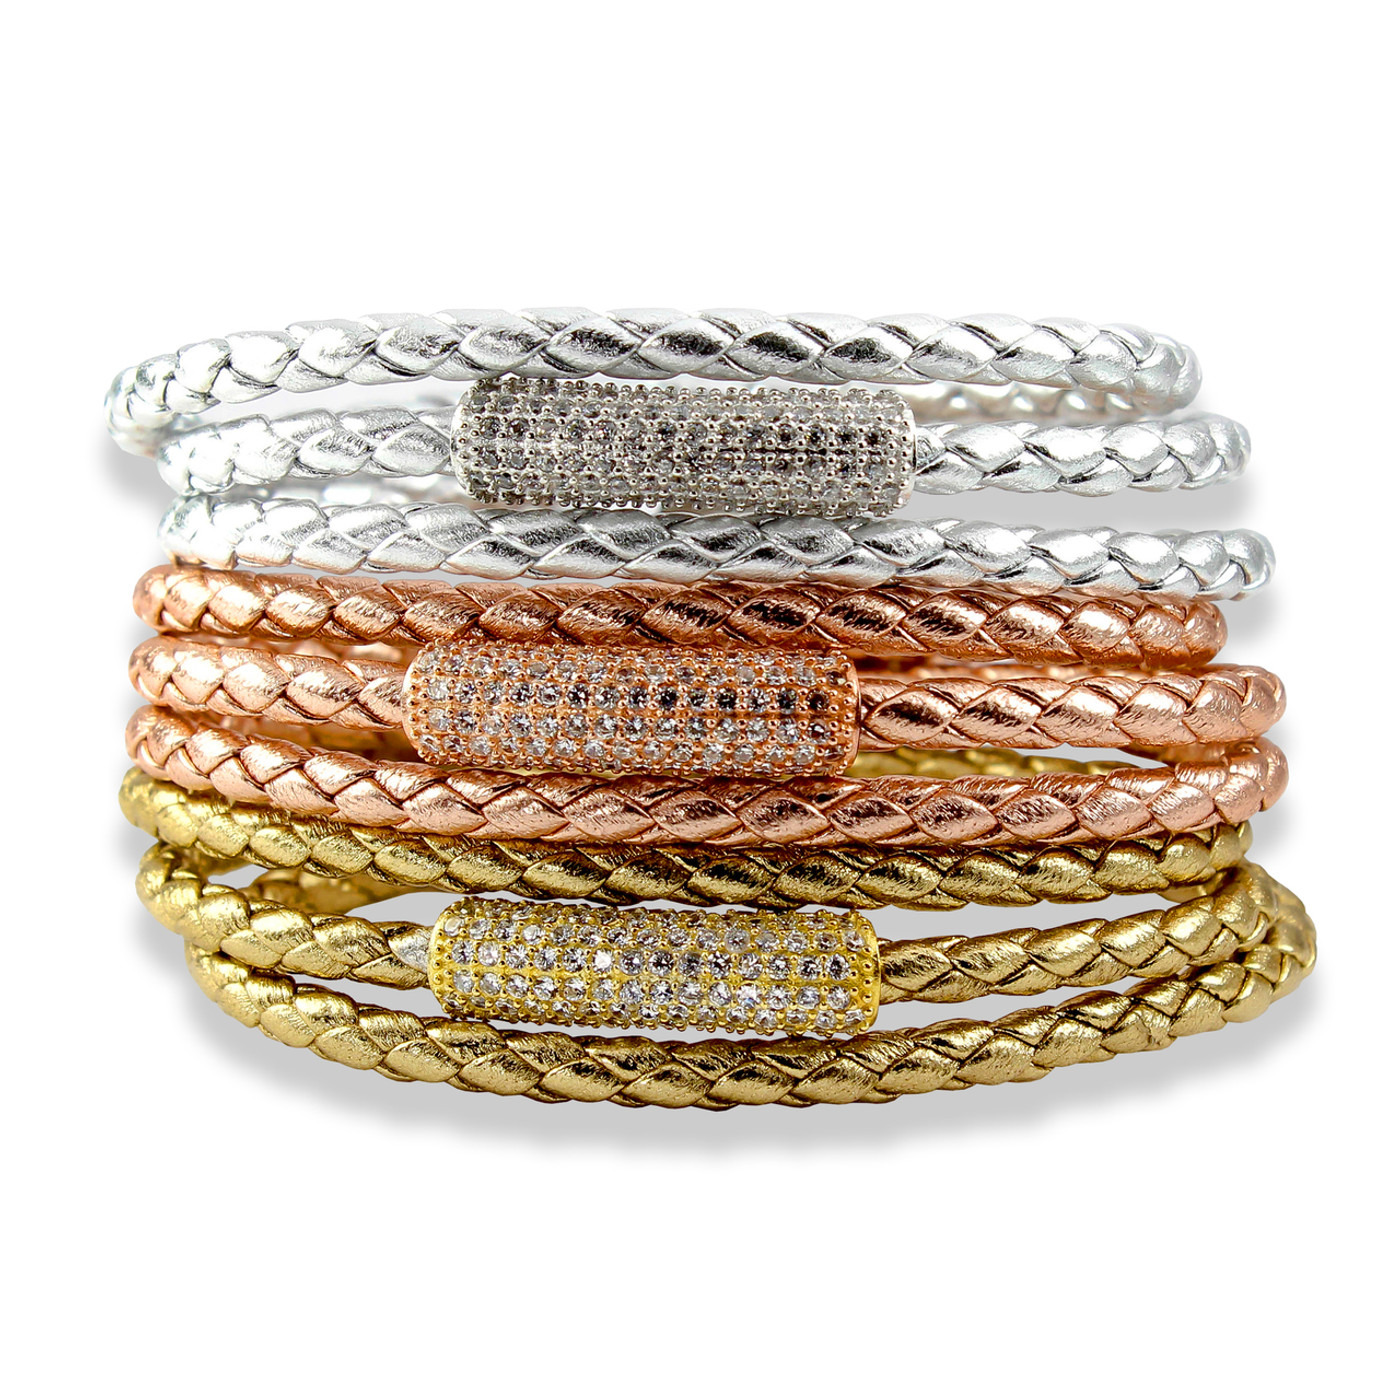 Ultra Chic and yet laid back this Triple Wrap Rich Braided Leather Bracelet Sterling Silver Bead with CZ Sterling Silver Magnetic Clasp.